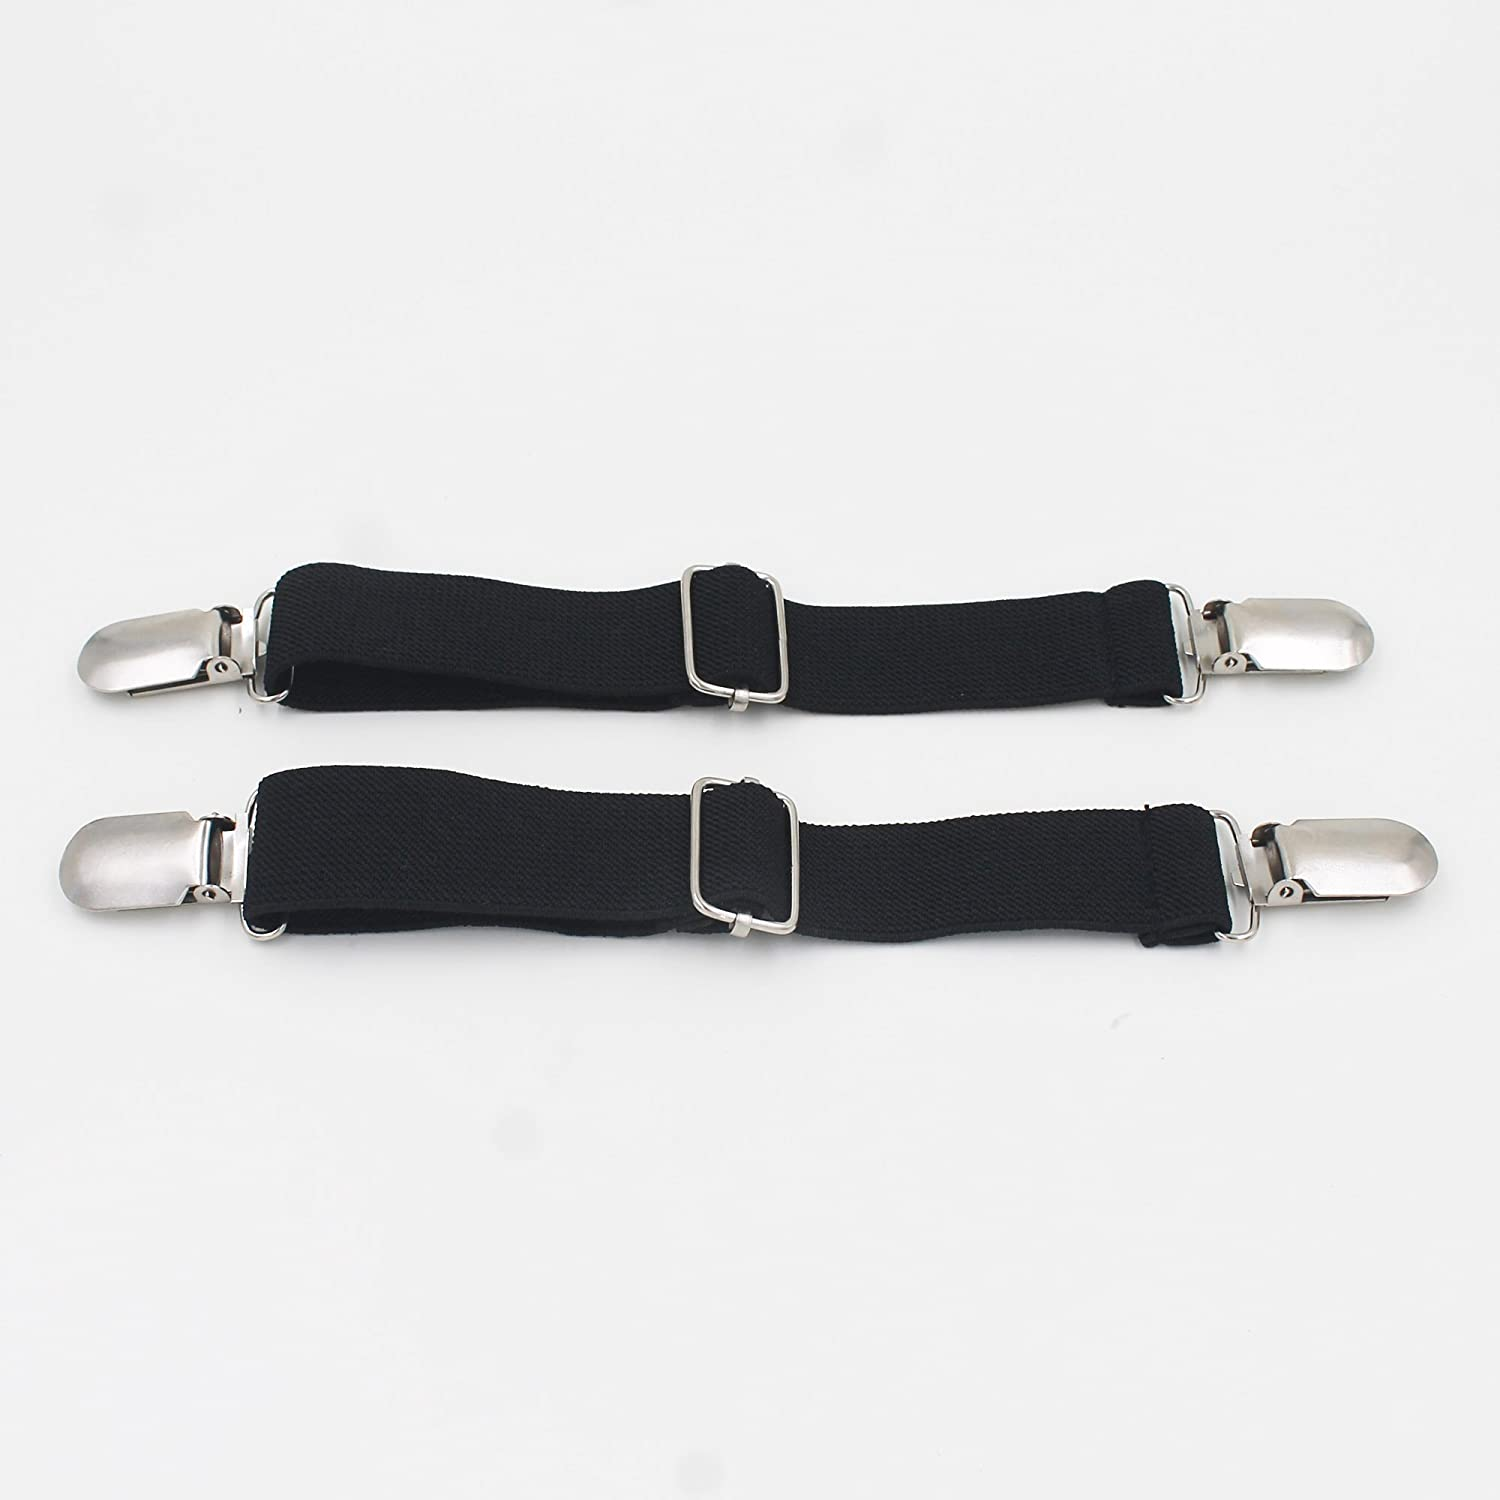 2-pc Adjustable Elastic Motorcycle Biker Elastic Boot Straps Pant Clips Stirrups Jod Clips Estore Ship From China